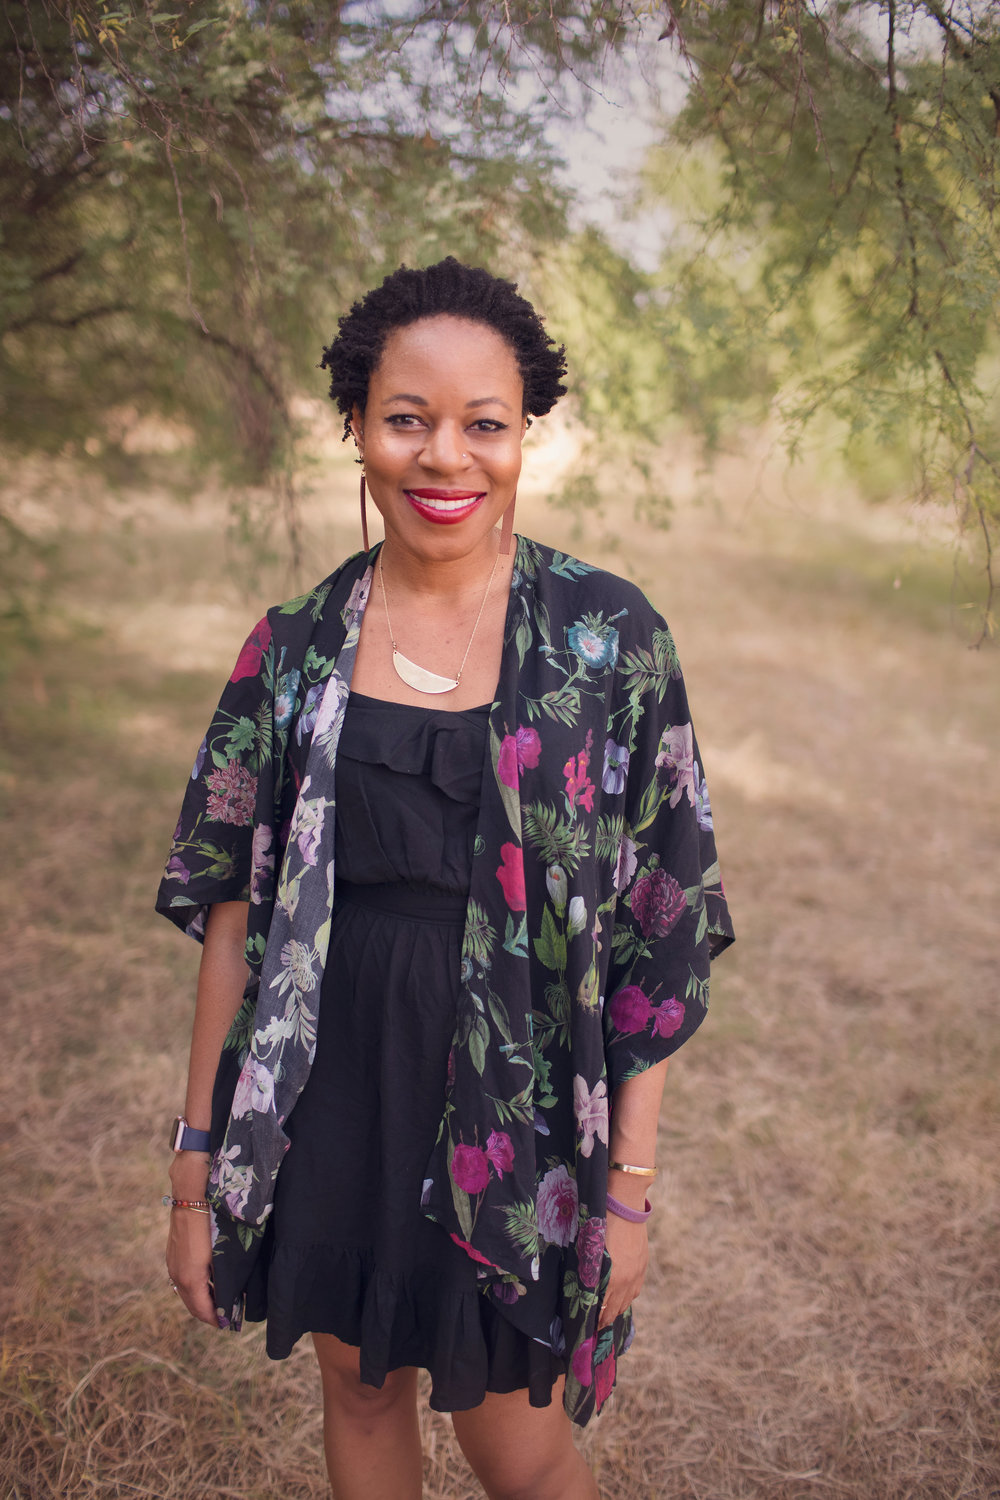 """""""Let Her Share Her Story"""" photo shoot in Phoenix, AZ. Photo credit: Mel Bosna of  www.lulliloophotography.com"""